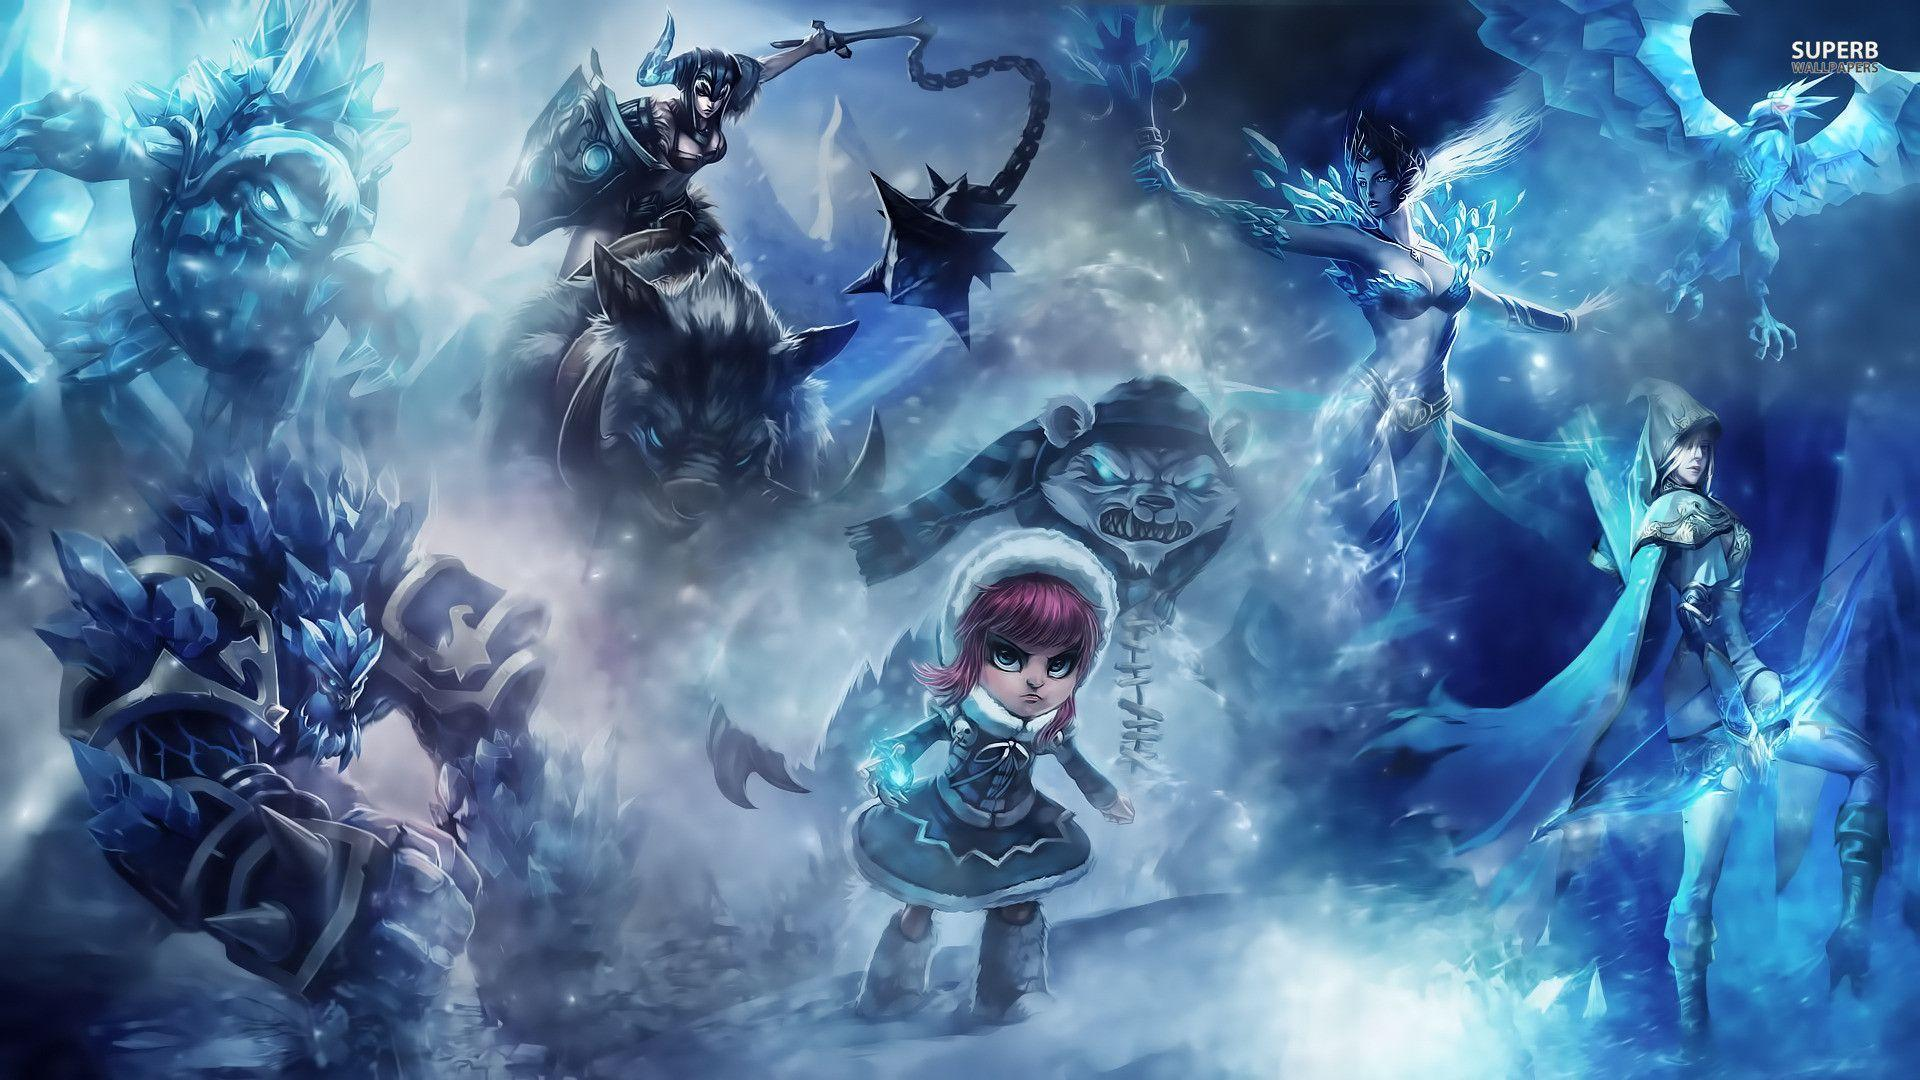 League Of Legends 1920x1080 Wallpapers - Full HD wallpaper search .